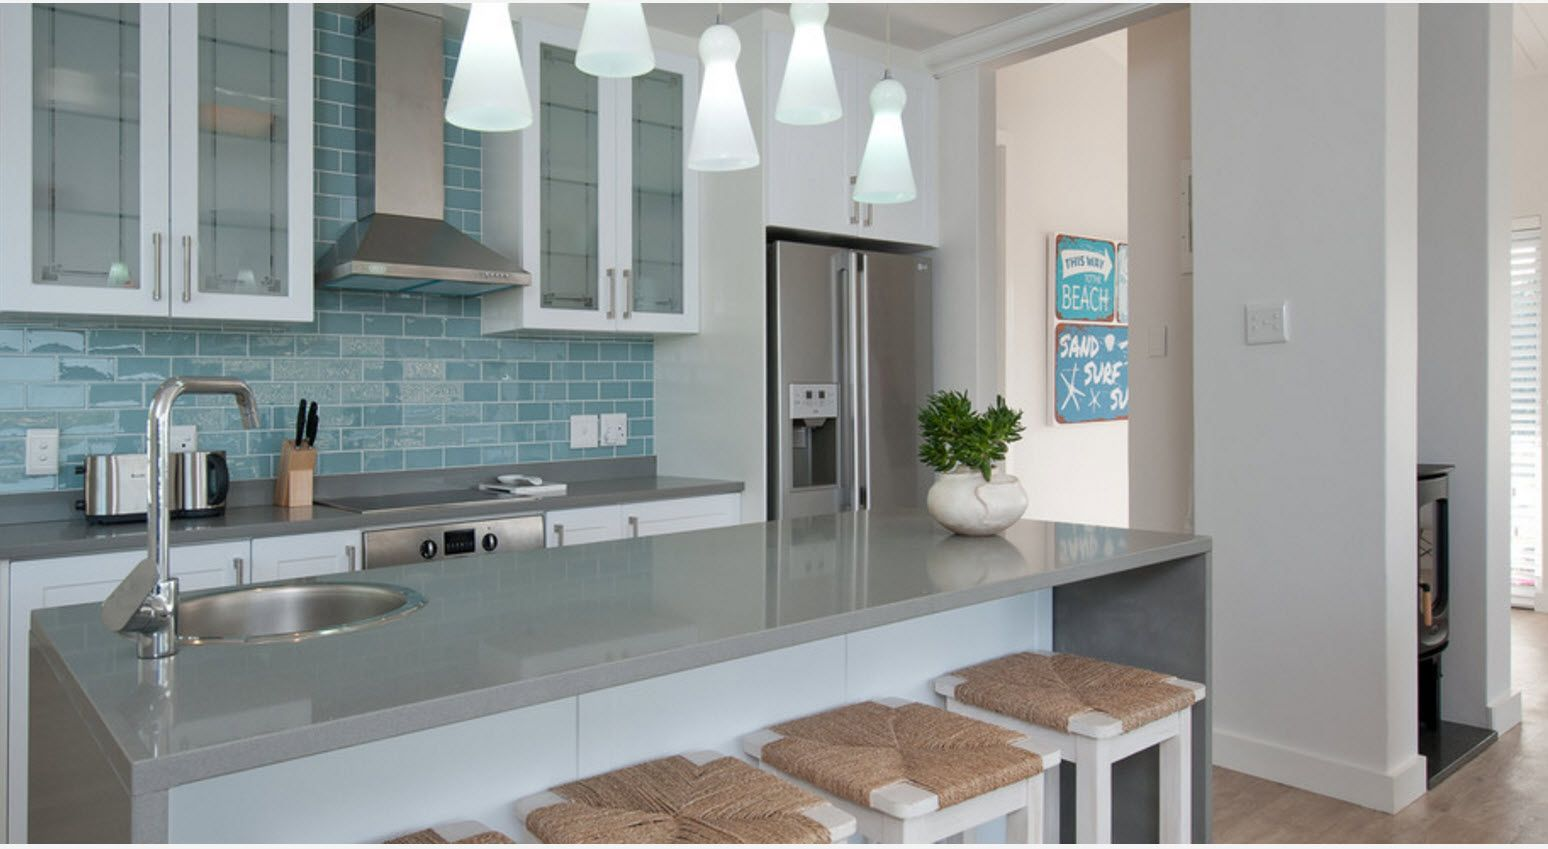 Win-win light design of the kitchen with plenty of artificial and natural light